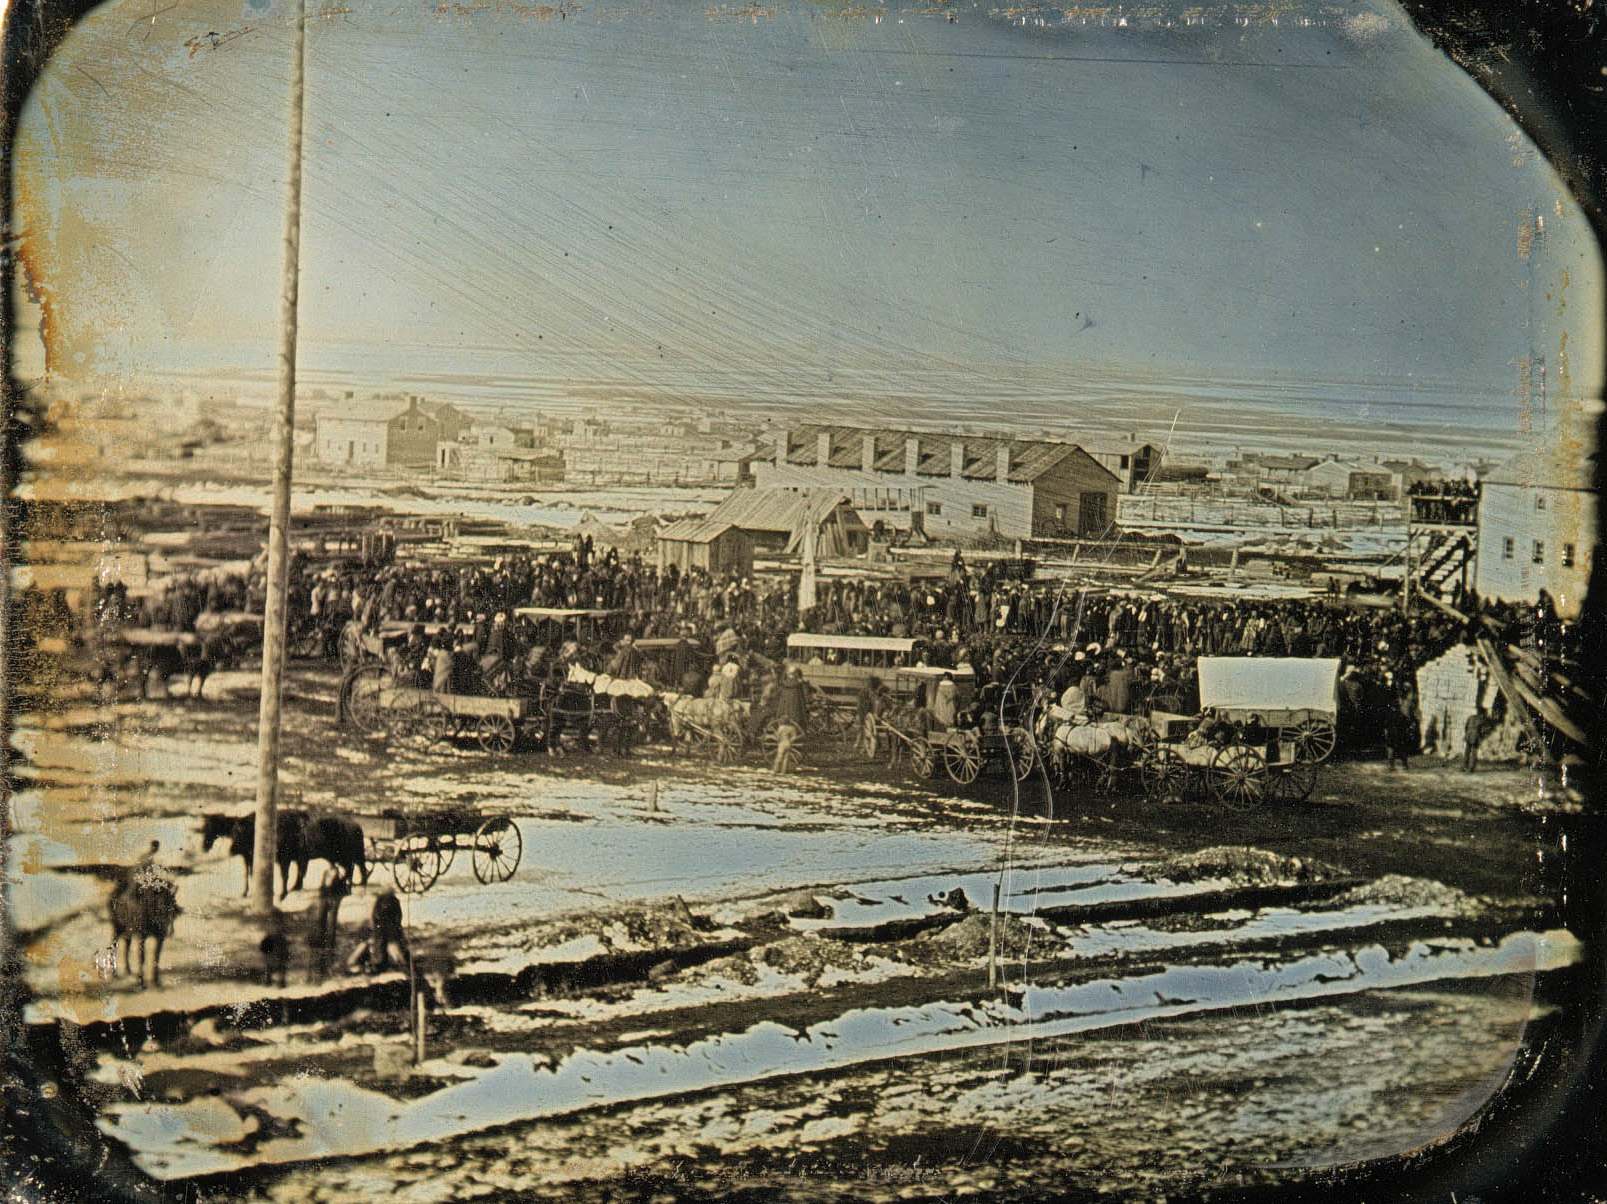 Groundbreaking of the Salt Lake Temple February 14, 1853.